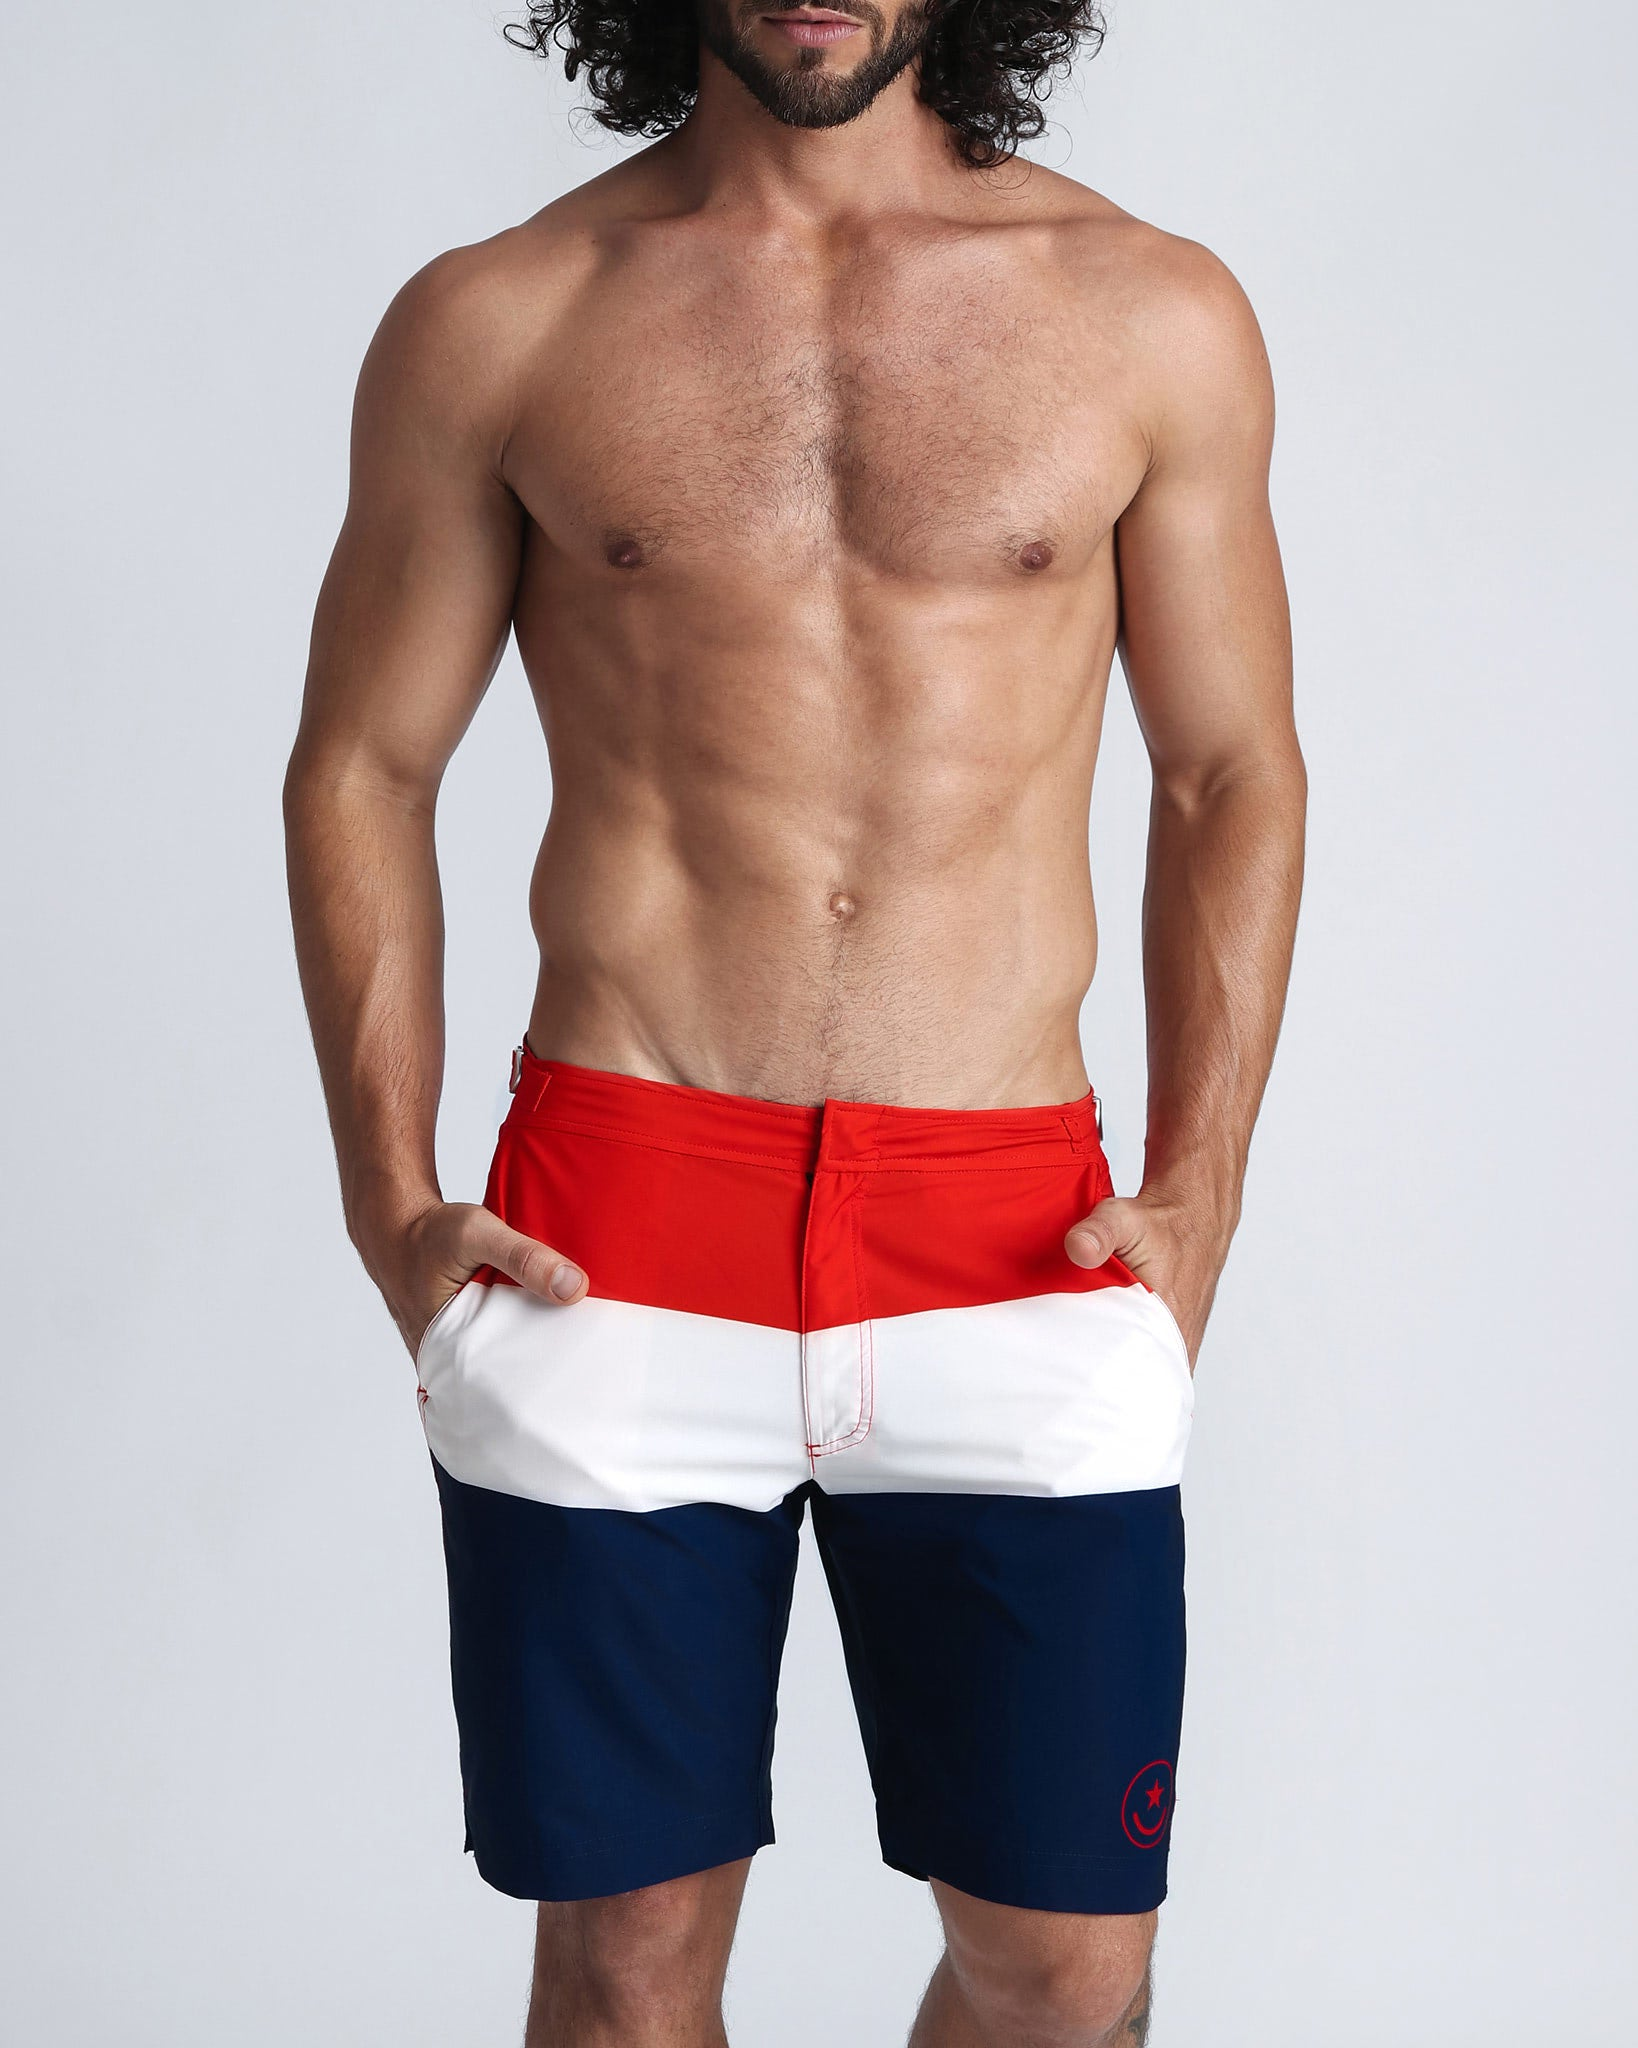 TRIAD Tailored Boardshorts (long leg, but right above knees) by Bang Clothes line of Men Swimwear, Swimsuits and beachwear, featuring original print with three main bold colored stripes, in red, white and blue, similar to matching tones of national flags of countries such as United States, France, United Kingdom, Australia, and many more.